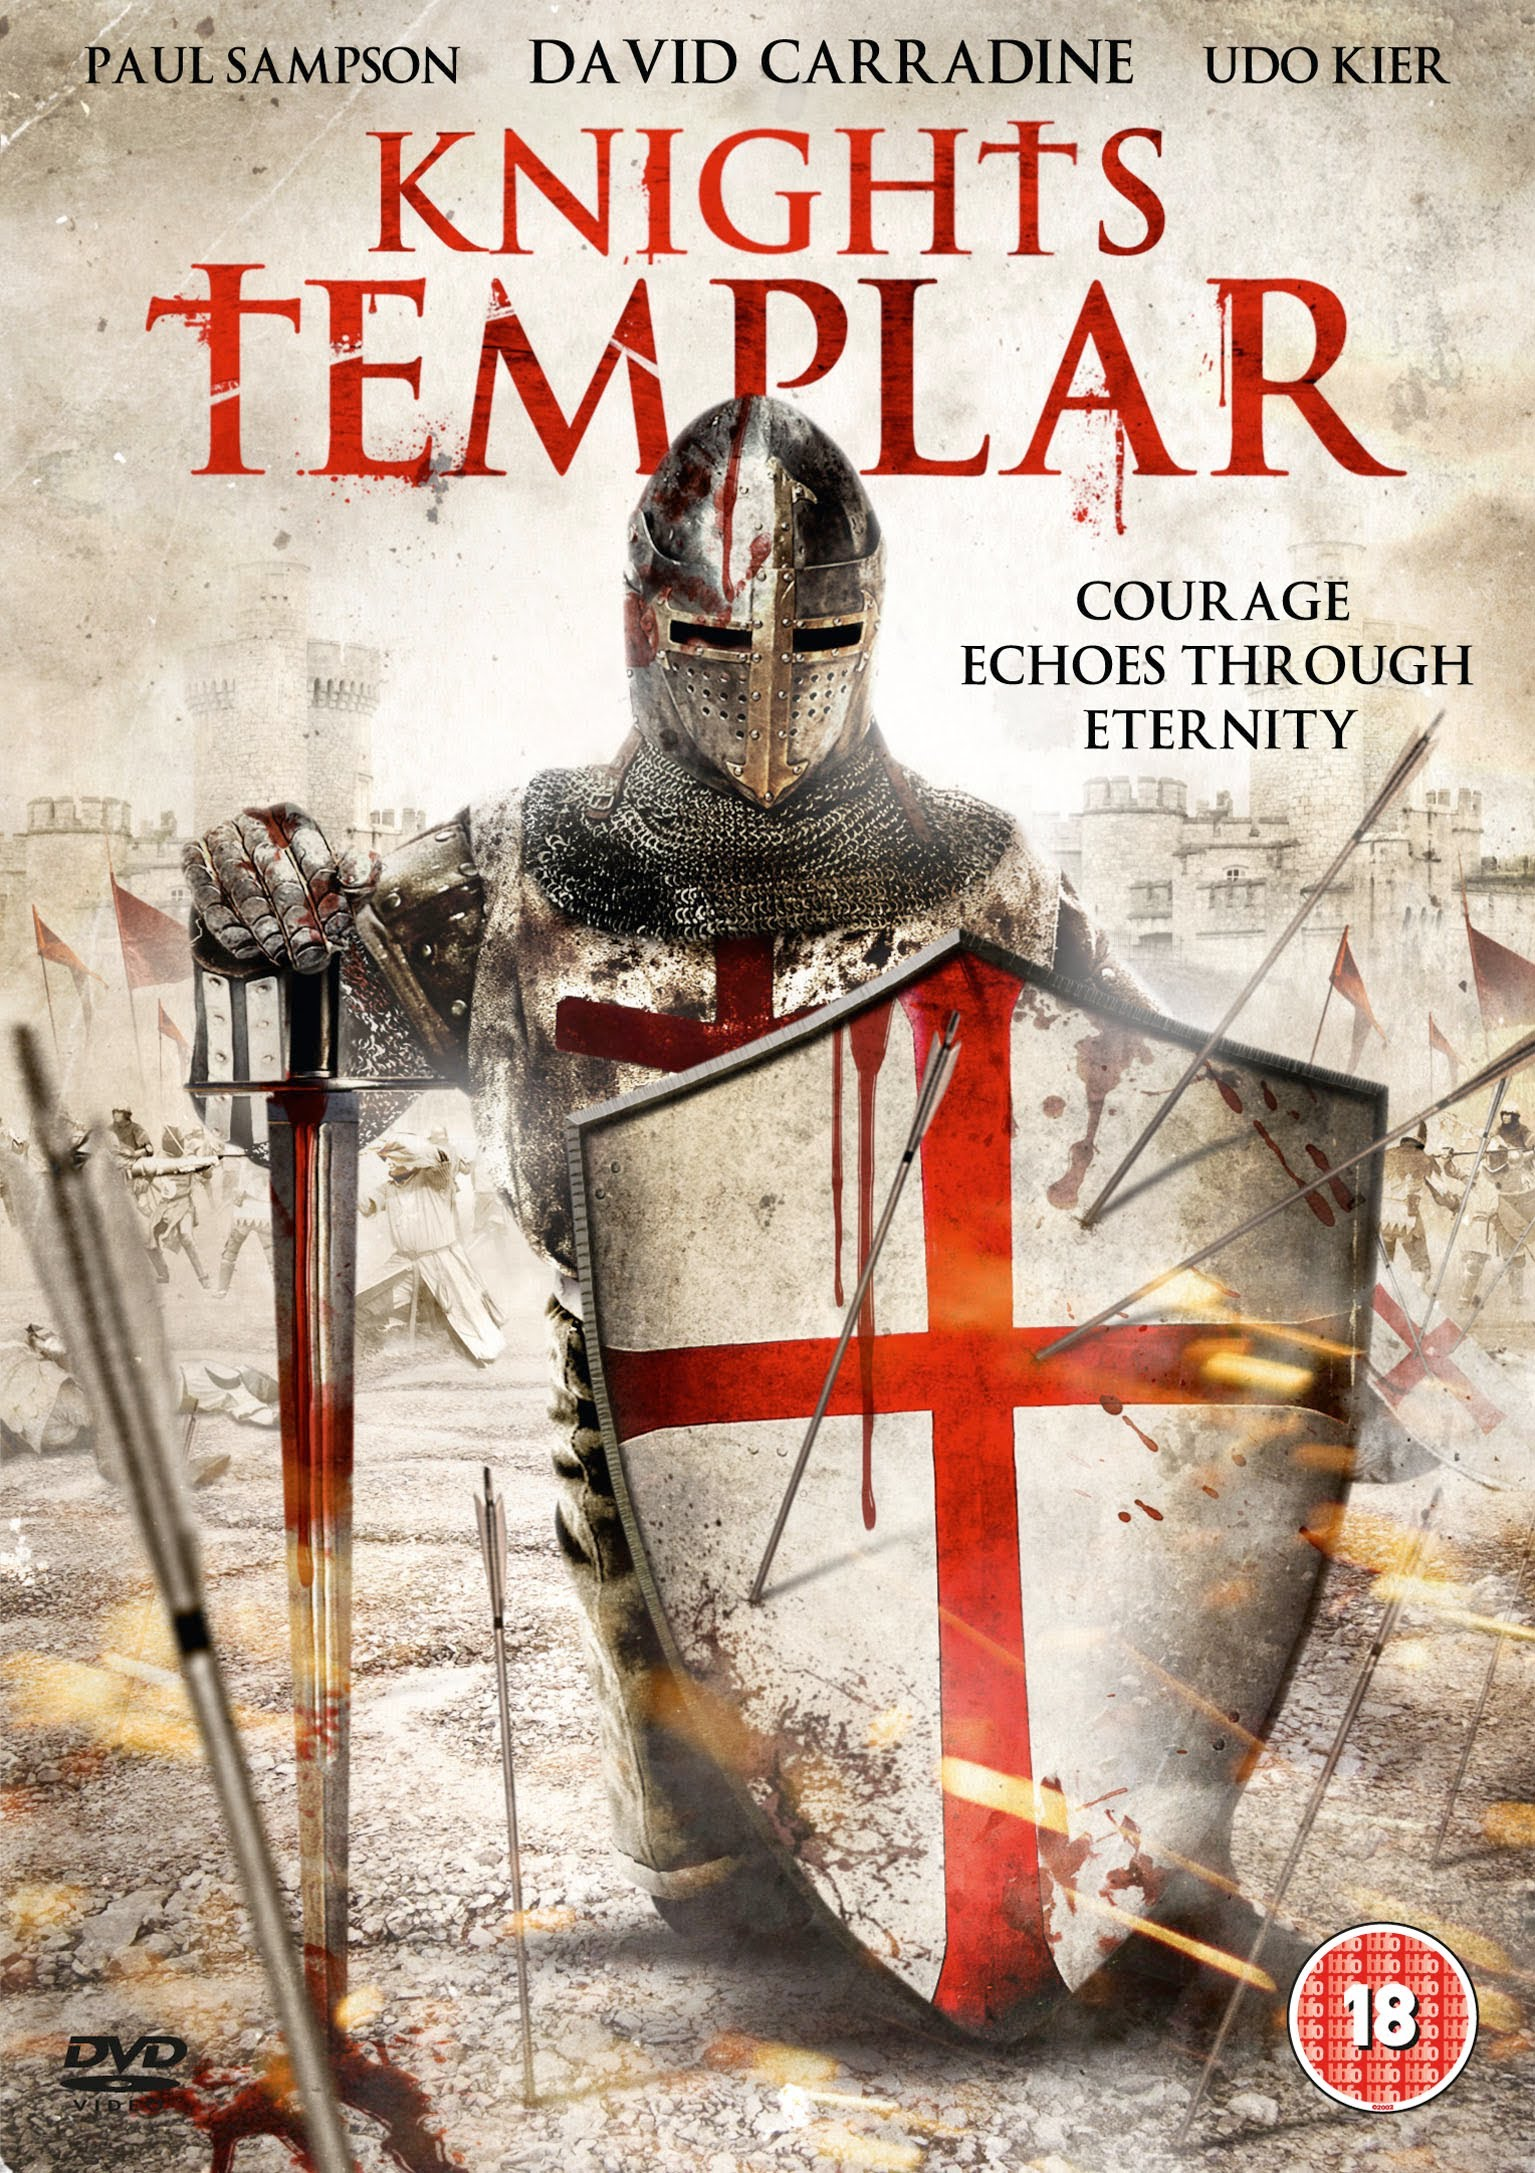 Knights Templar Official Trailer (2012).